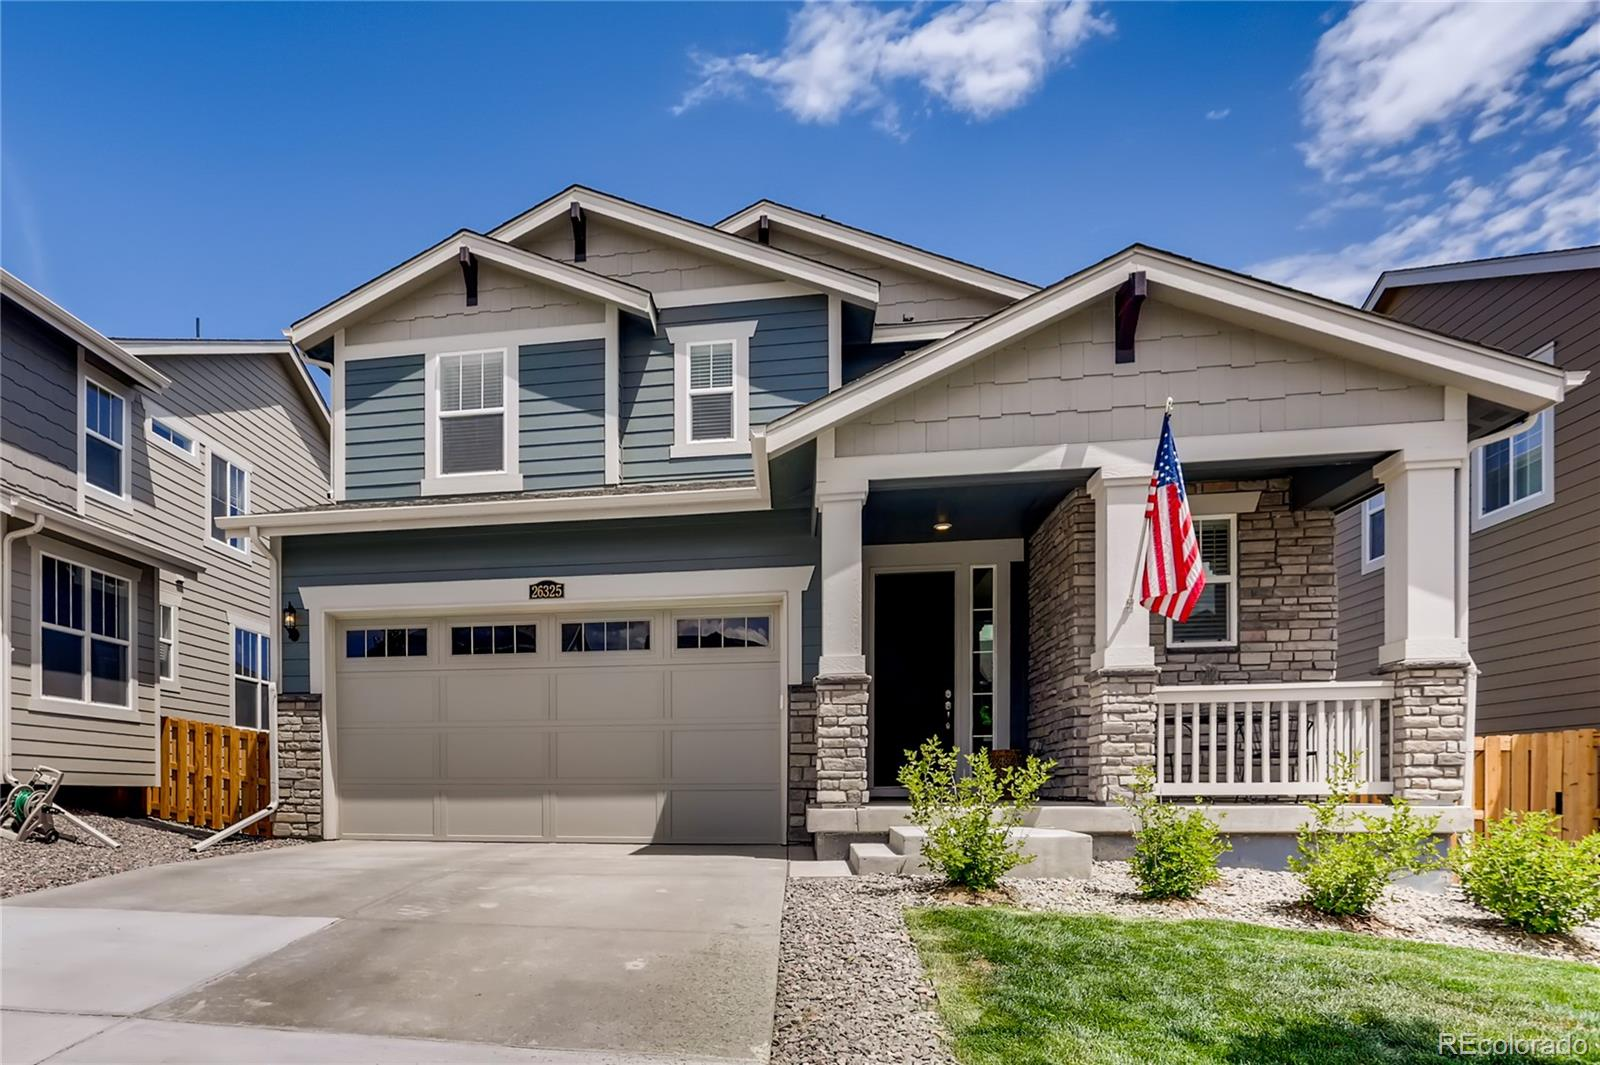 MLS# 2145354 - 2 - 26325 E Canal Place, Aurora, CO 80018